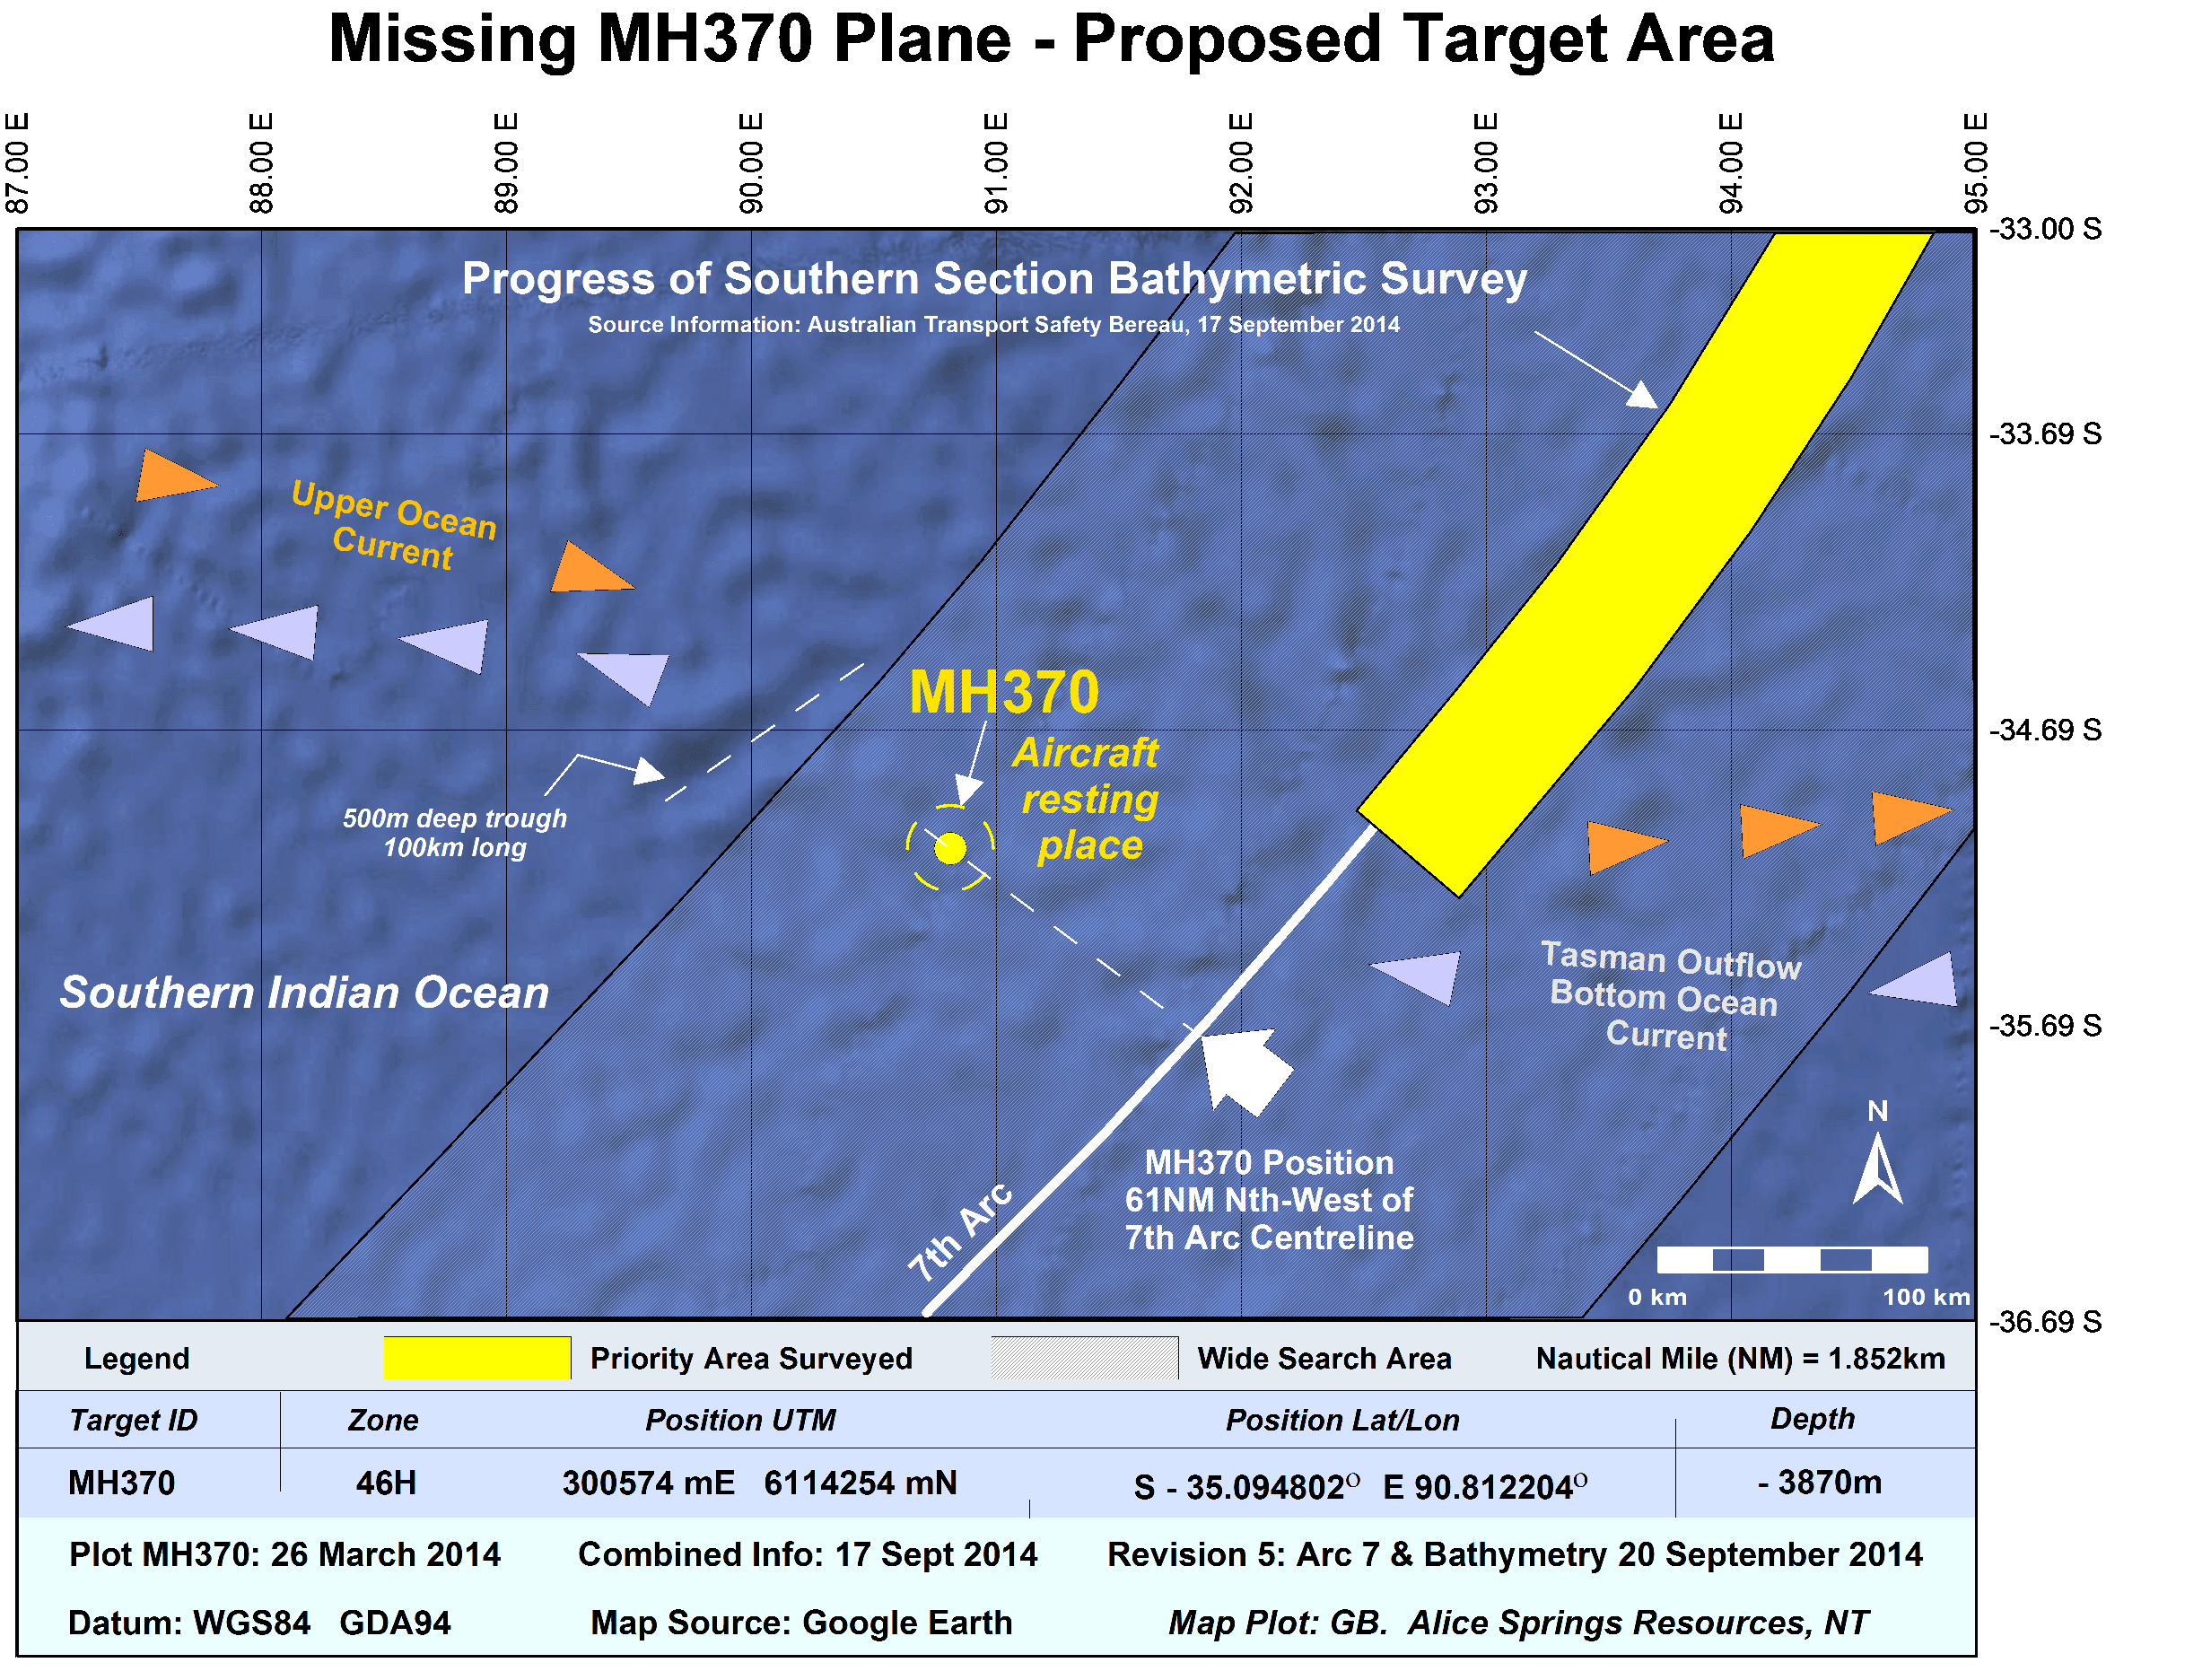 MapViewer Proposed Target Area - Missing MH370 Plane